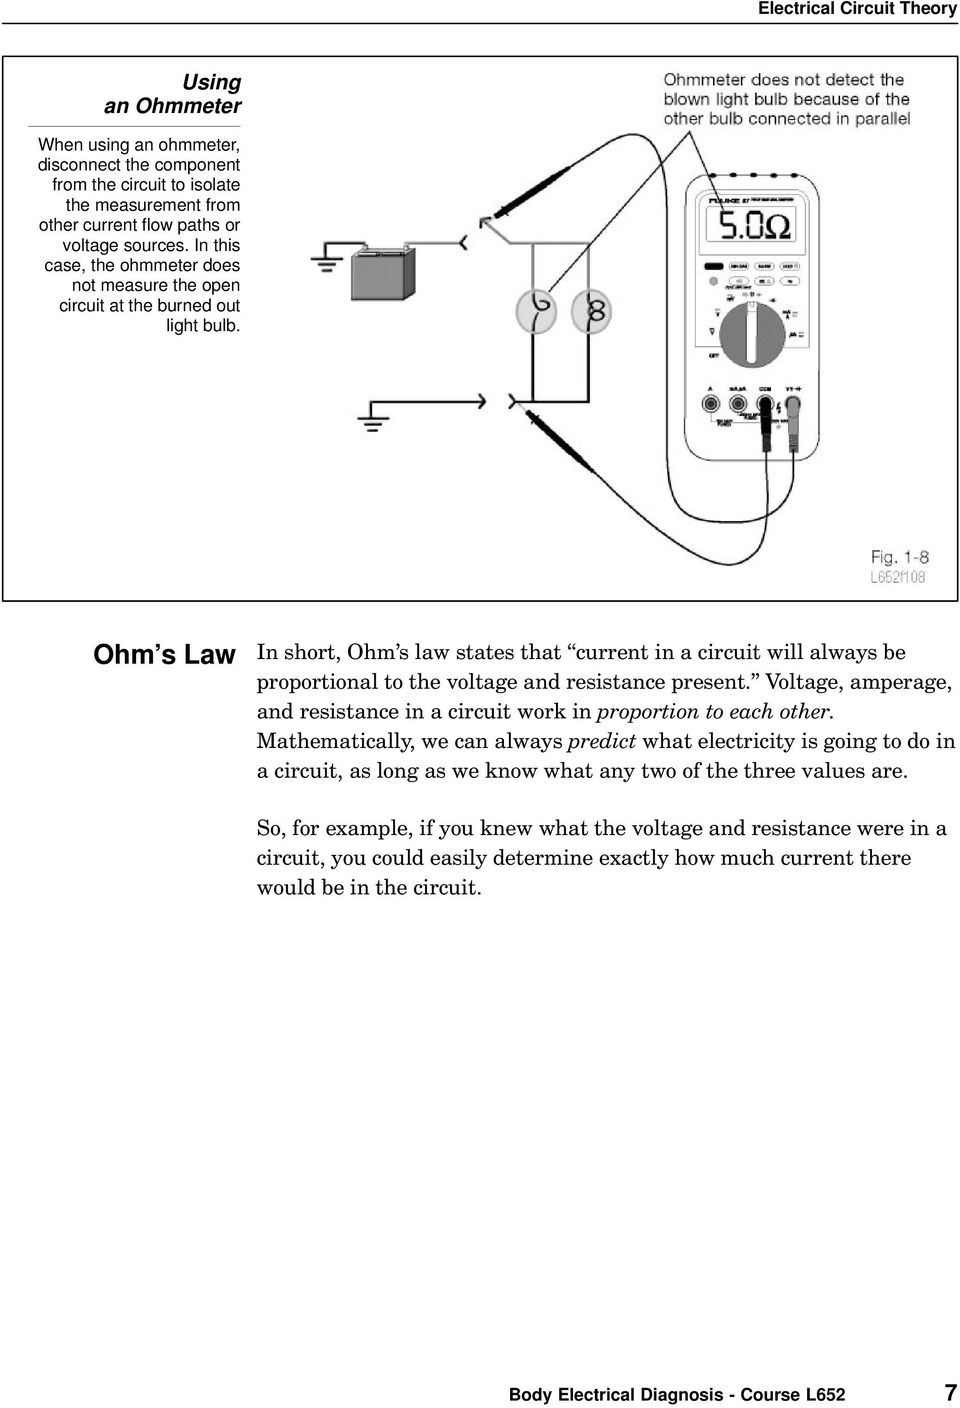 Electrical Circuit Theory Pdf Solenoid Valve Diagram Automotivecircuit Ohm S Law In Short States That Current A Will